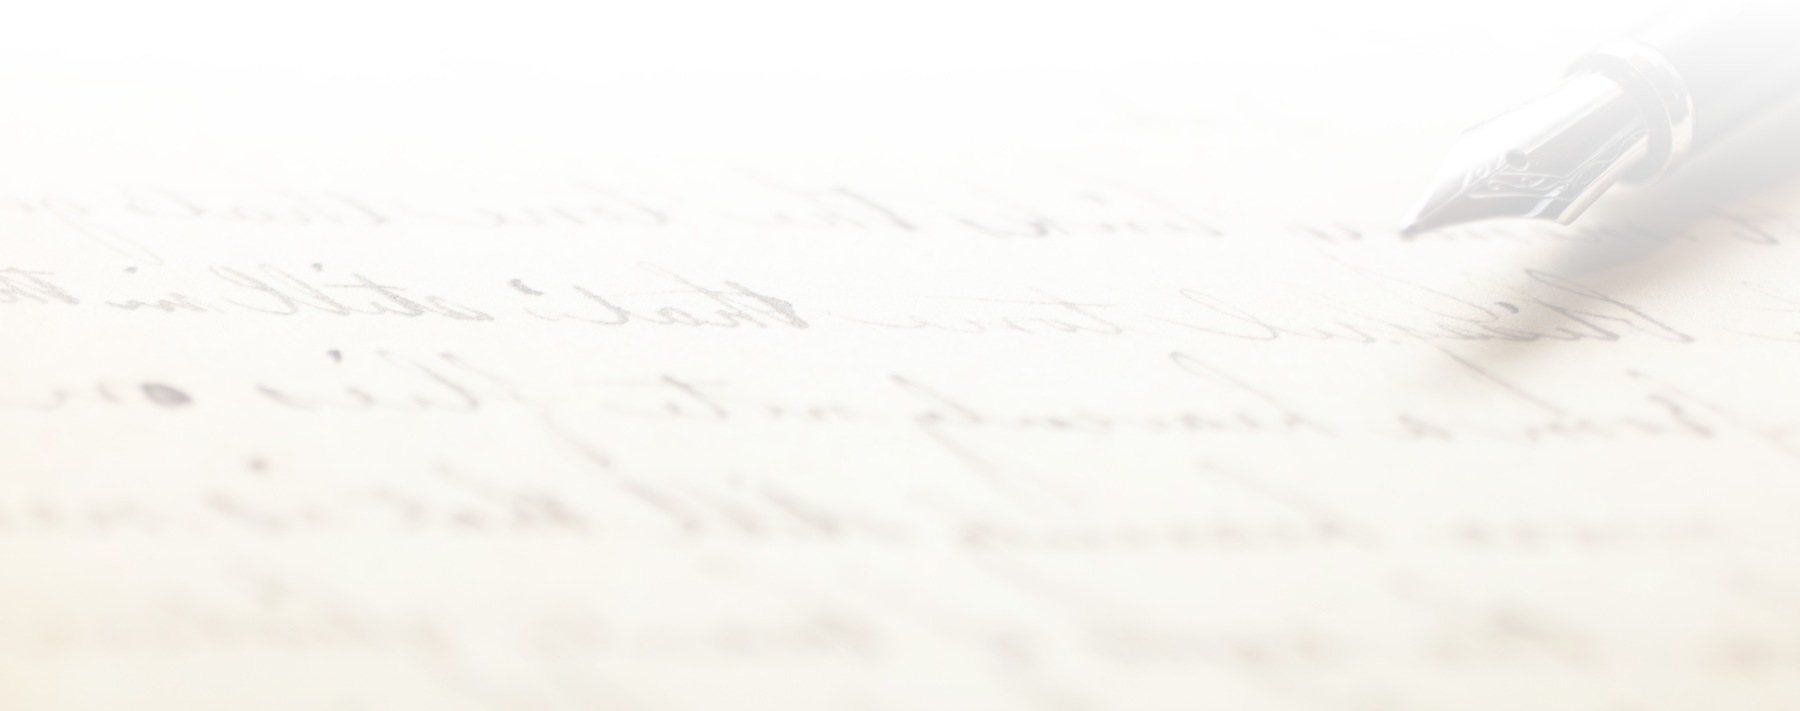 Fountain pen on an antique handwritten letter with a white gradient.